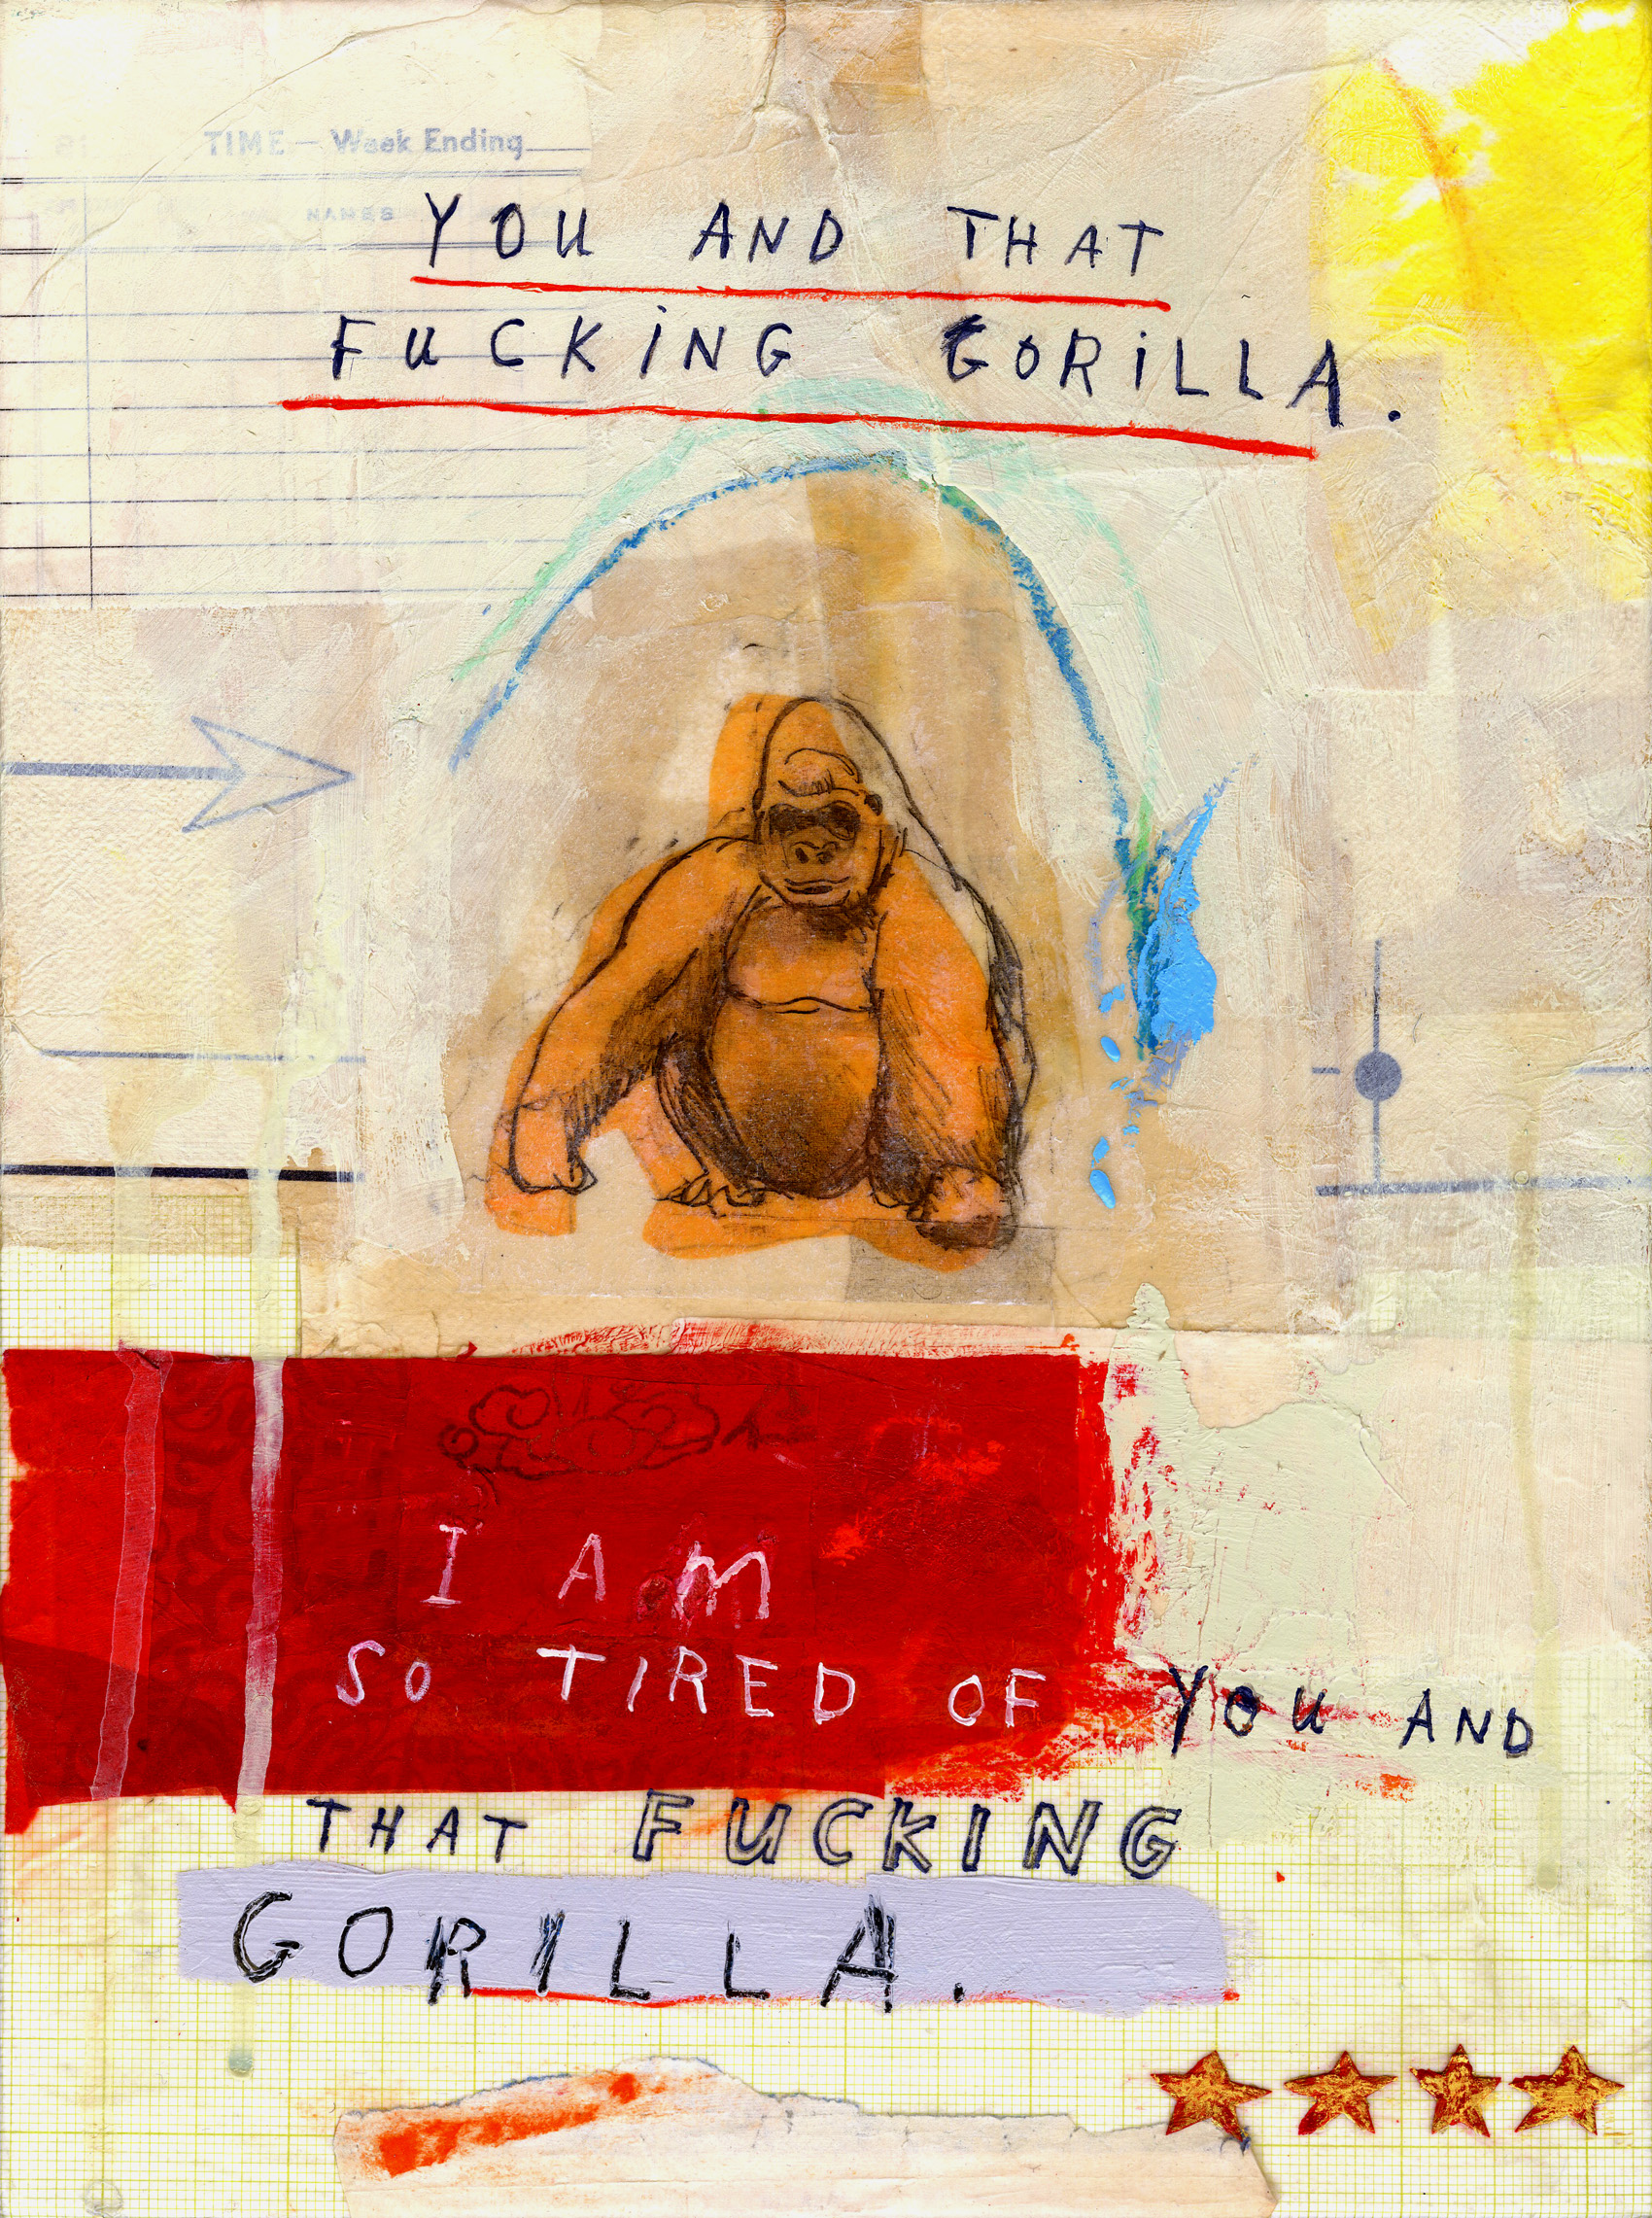 Gorillas and obscenities  - who could ask for more.